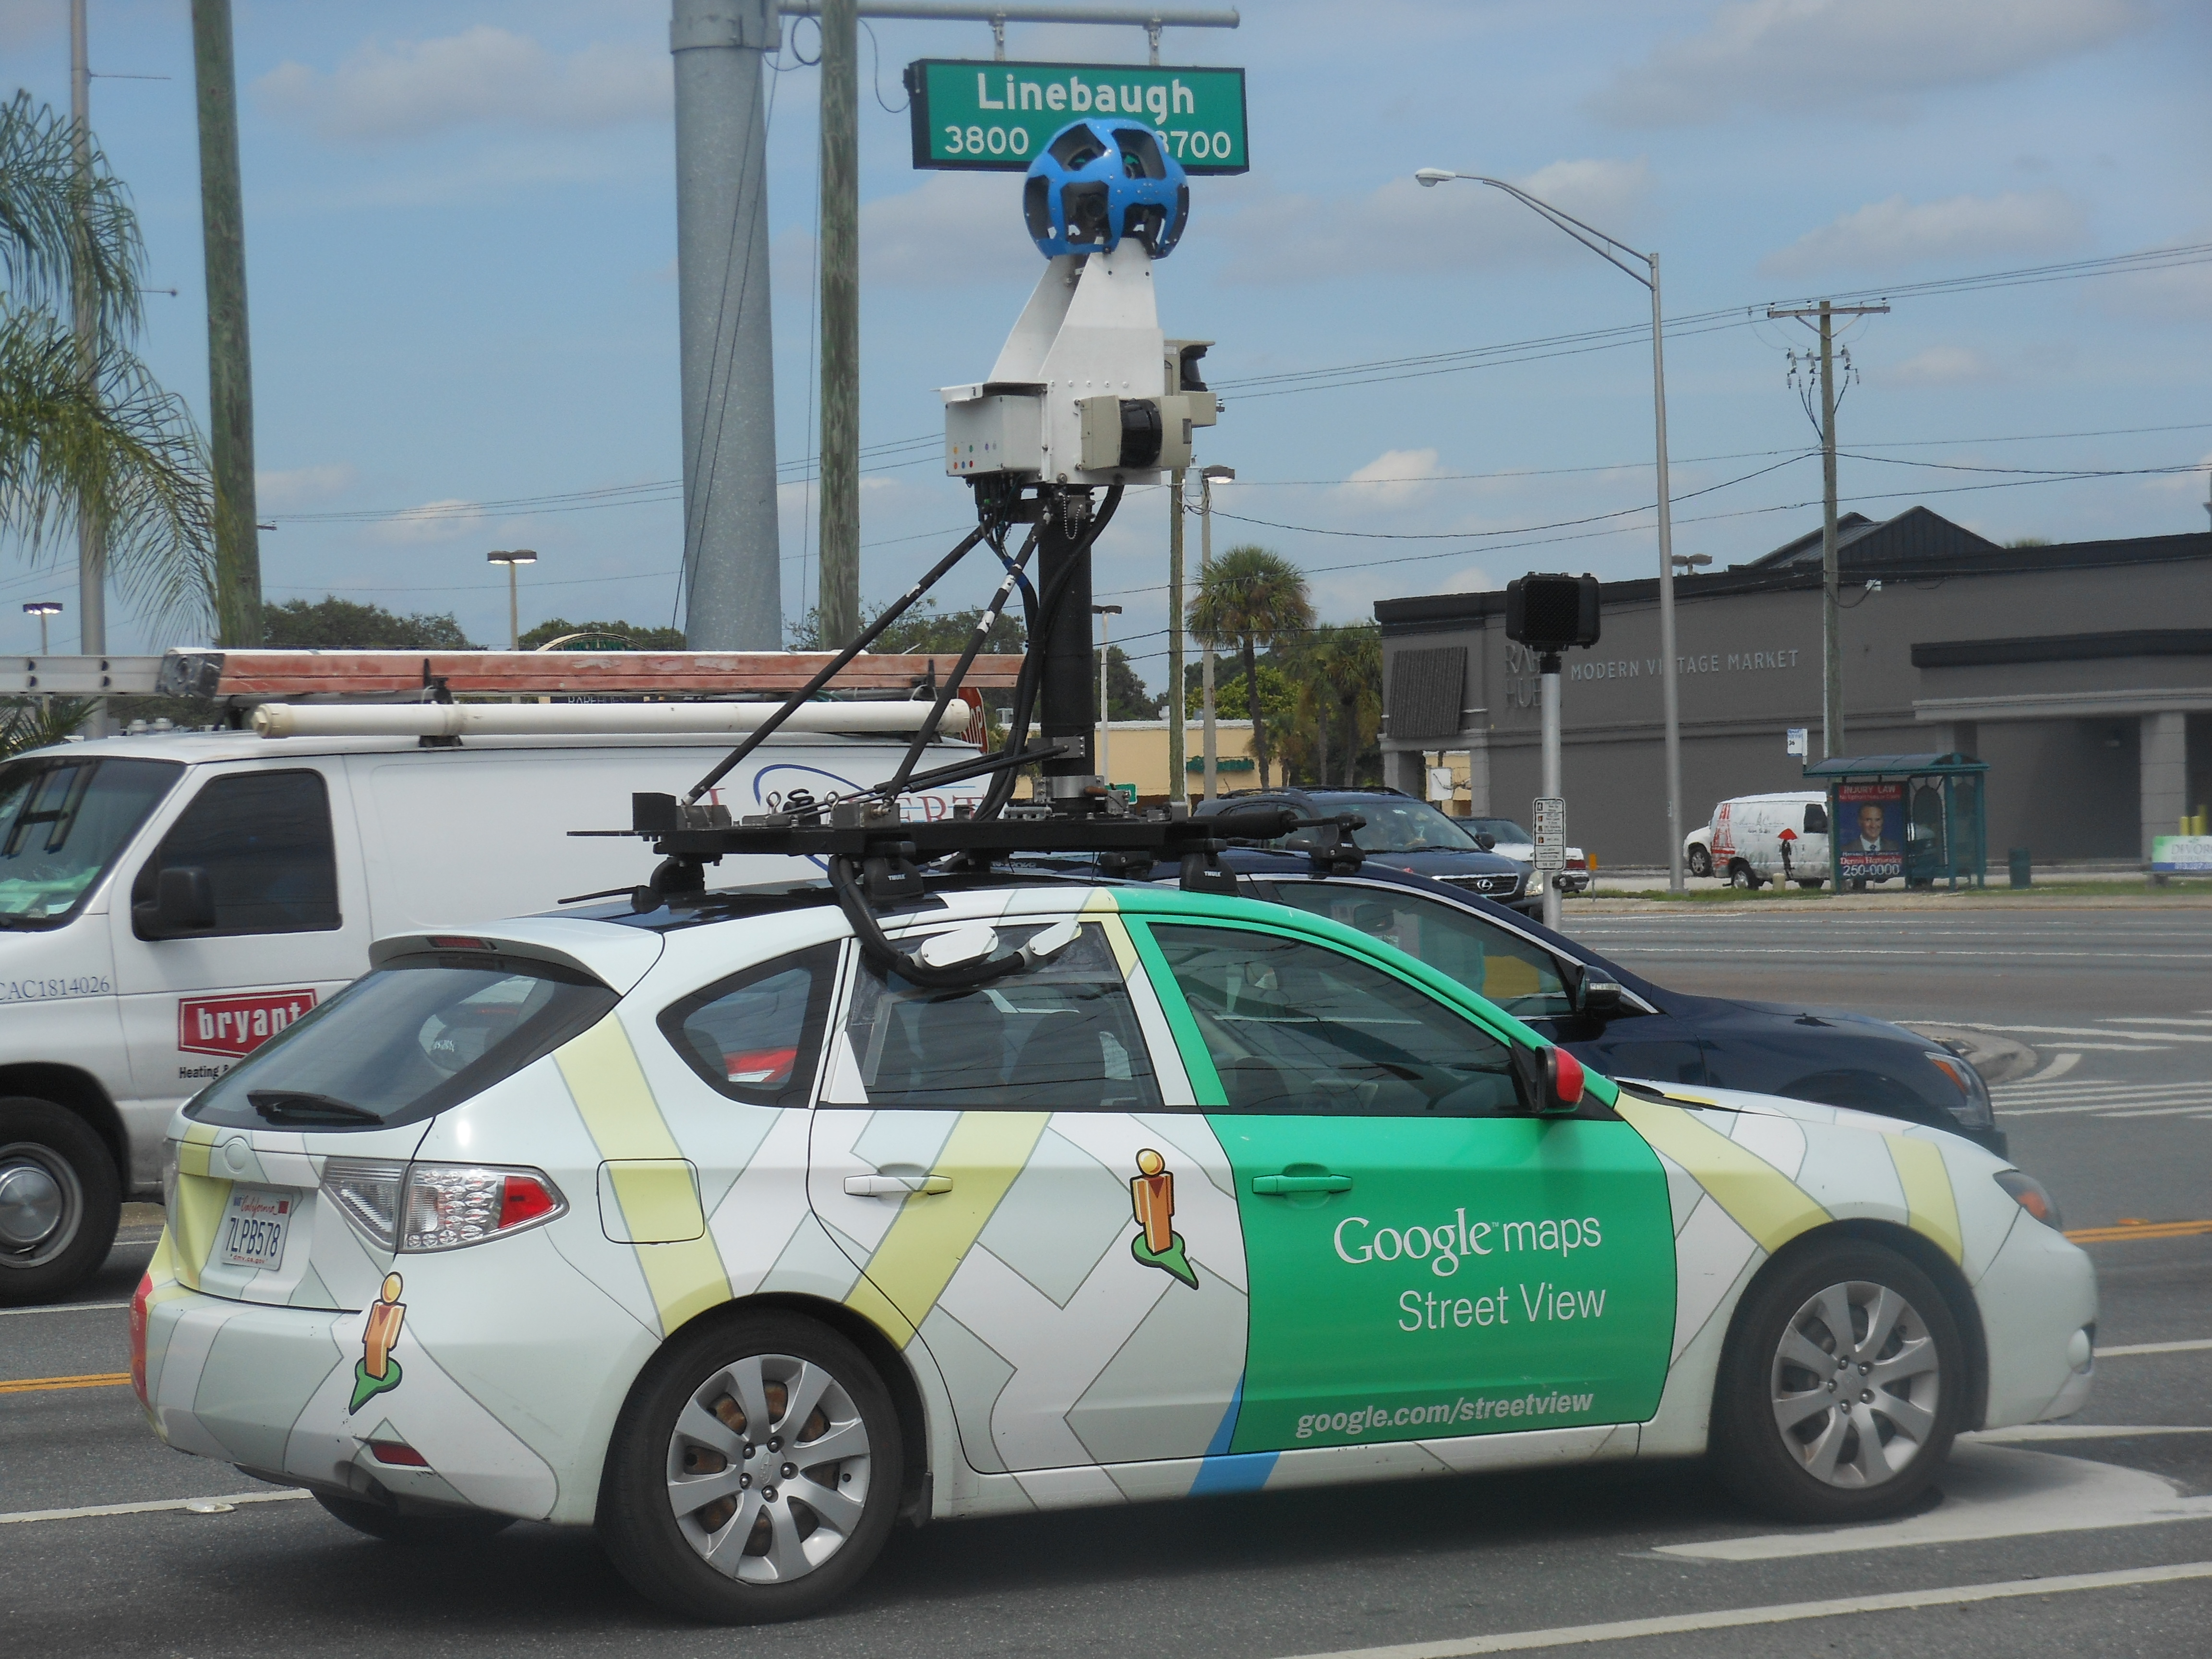 Google Maps Car in Tampa Area | News Blog